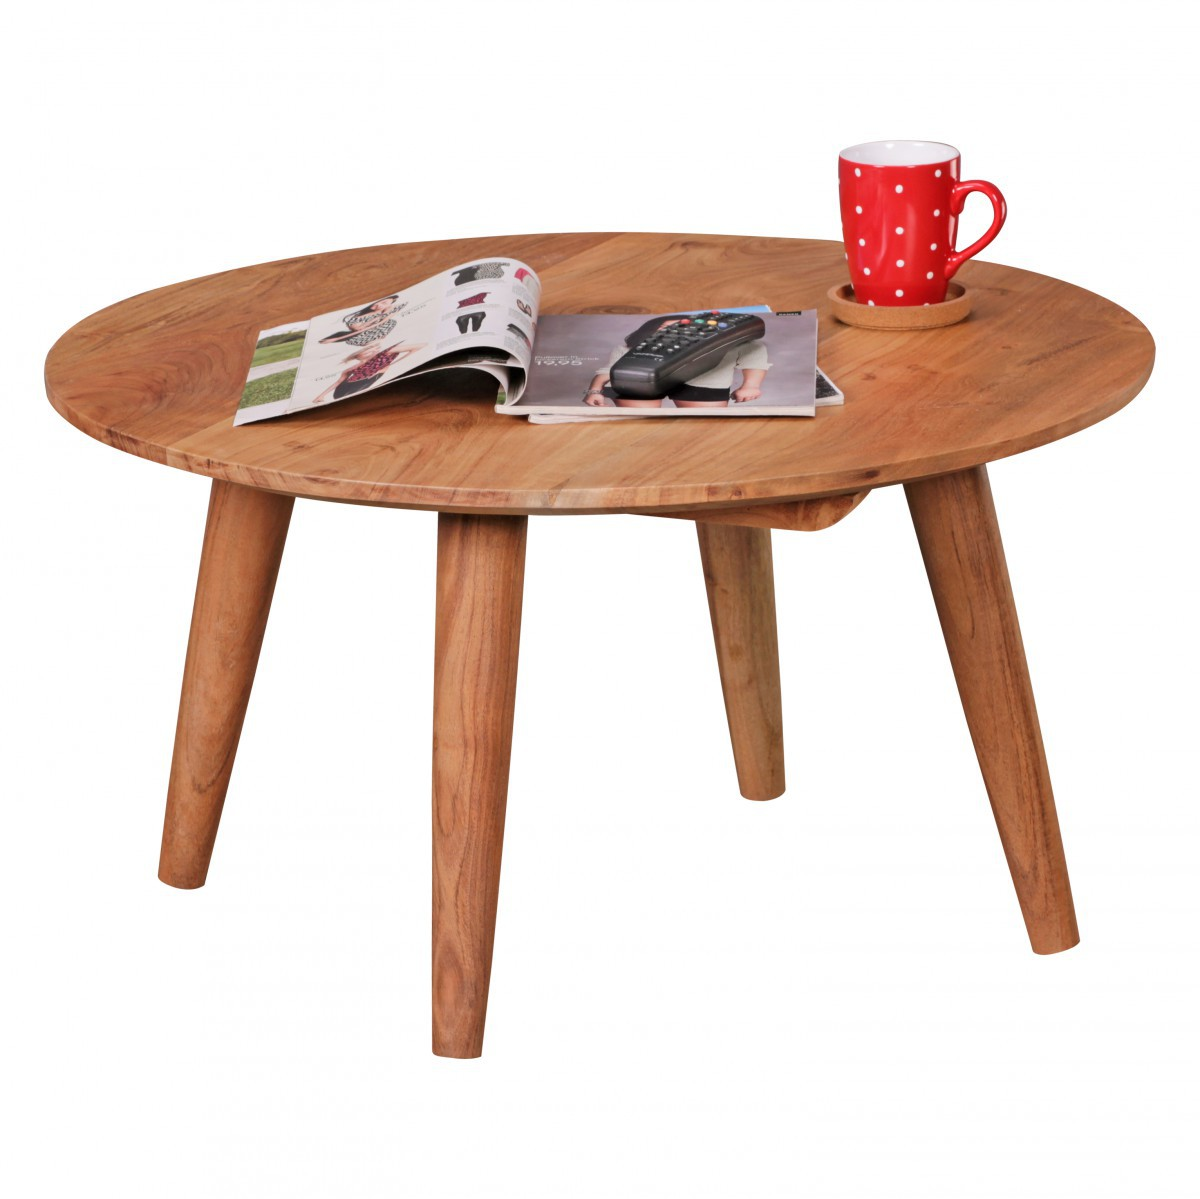 Finebuy table basse en bois massif acacia table basse for Tables basses rondes en bois